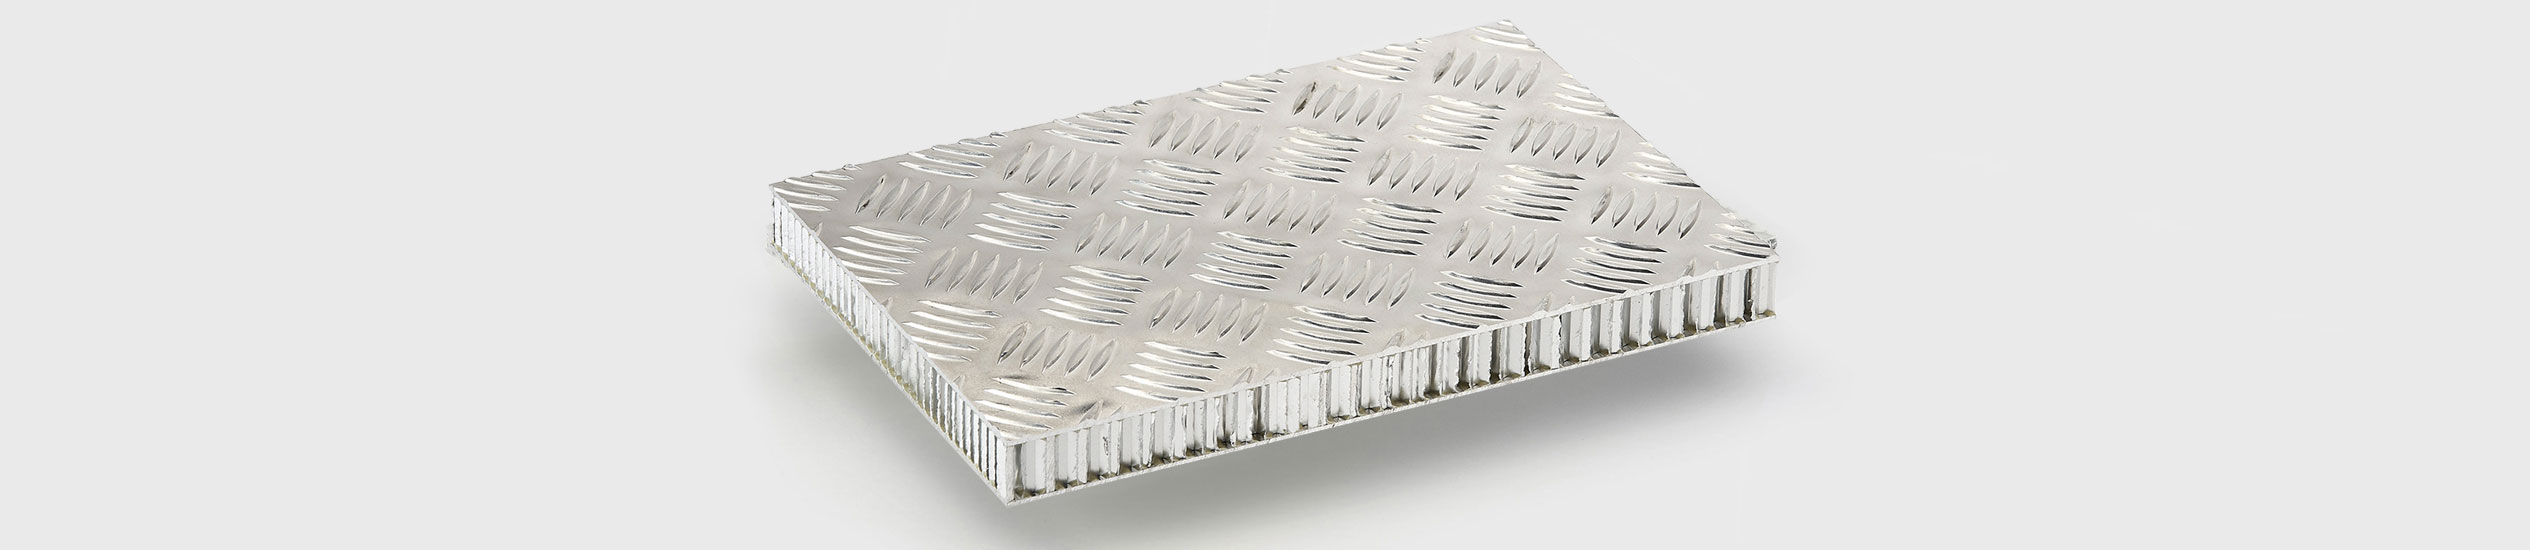 COMPOCEL® FLOOR ALU-RIS, ALU-MAN is a sandwich panel bonded with aluminium material and with a core in aluminium honeycomb